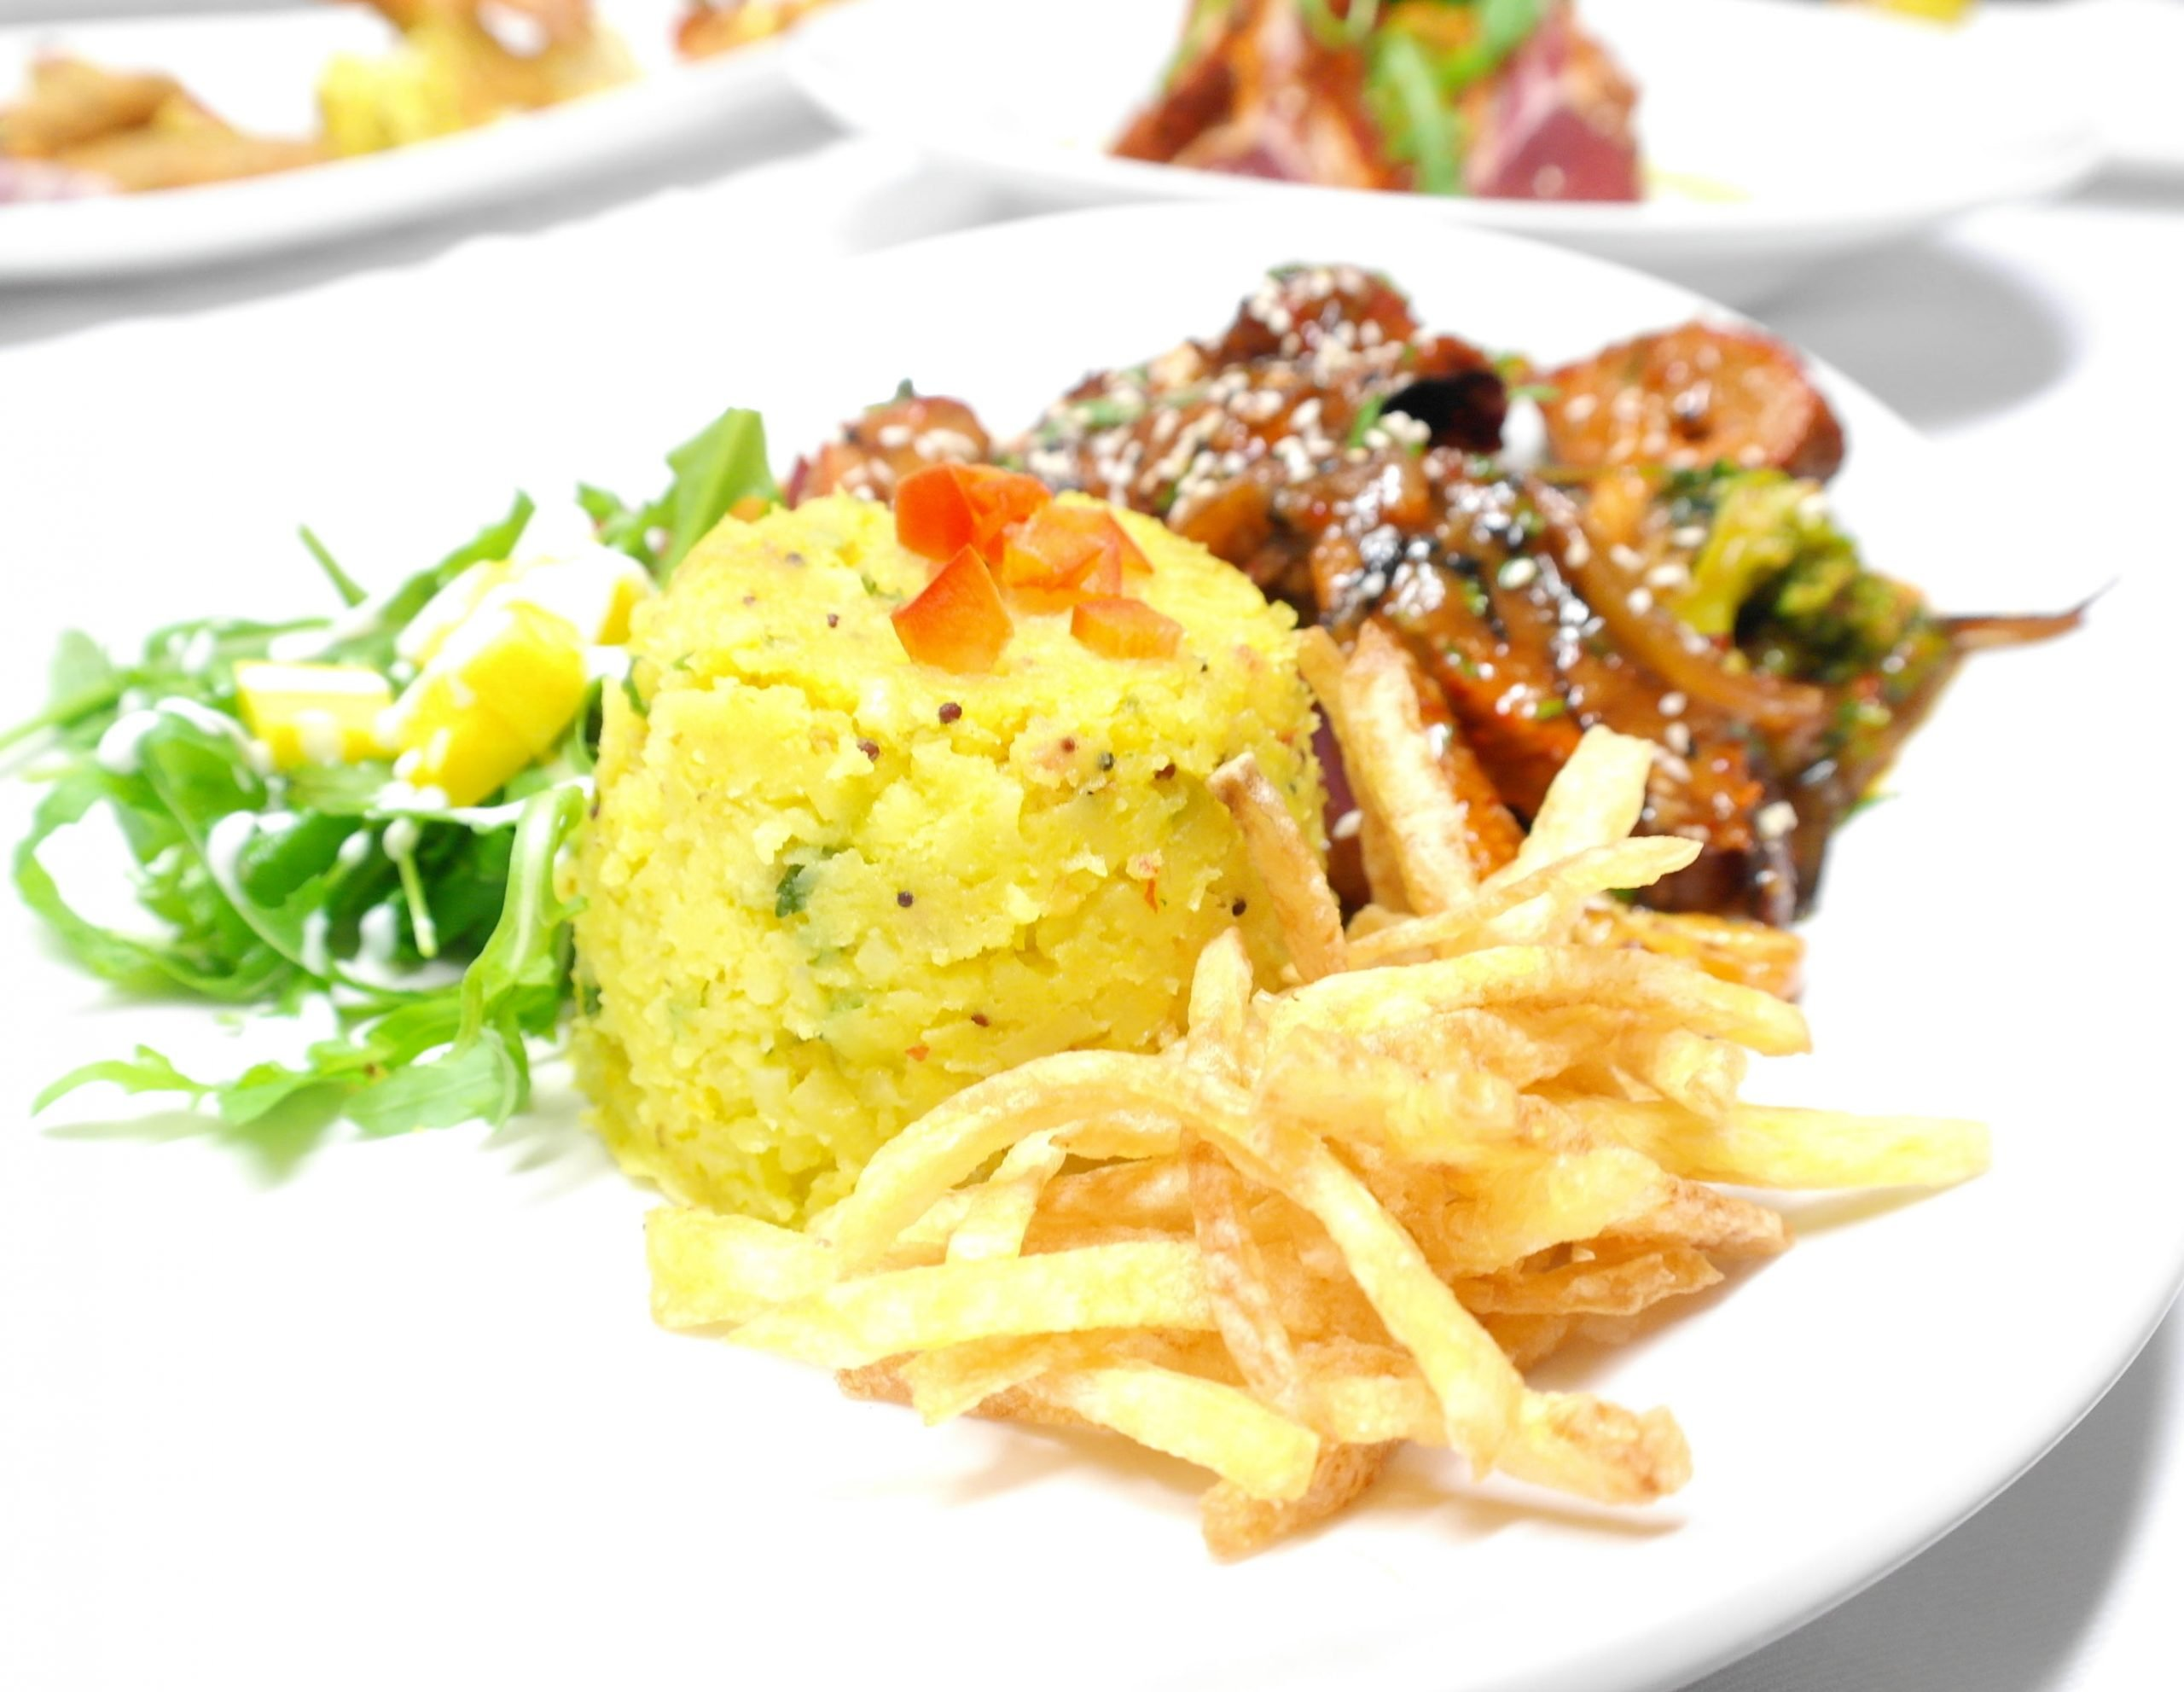 The 29029 Restaurant - Indian Restaurant in Poole Broadstone - Food image